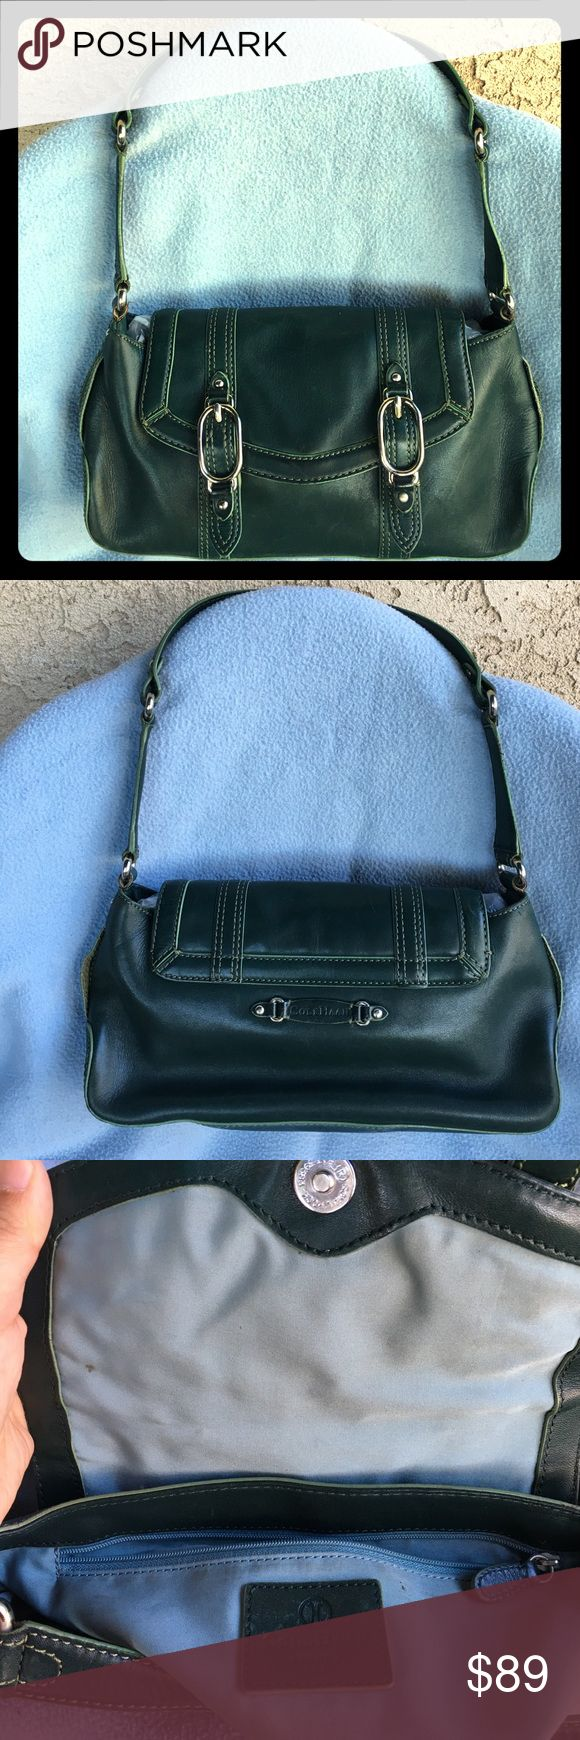 Vintage Trinity Cole Haan green leather purse Beautiful small green leather Cole Haan trinity handbag. Great condition. Cole Haan Bags Shoulder Bags